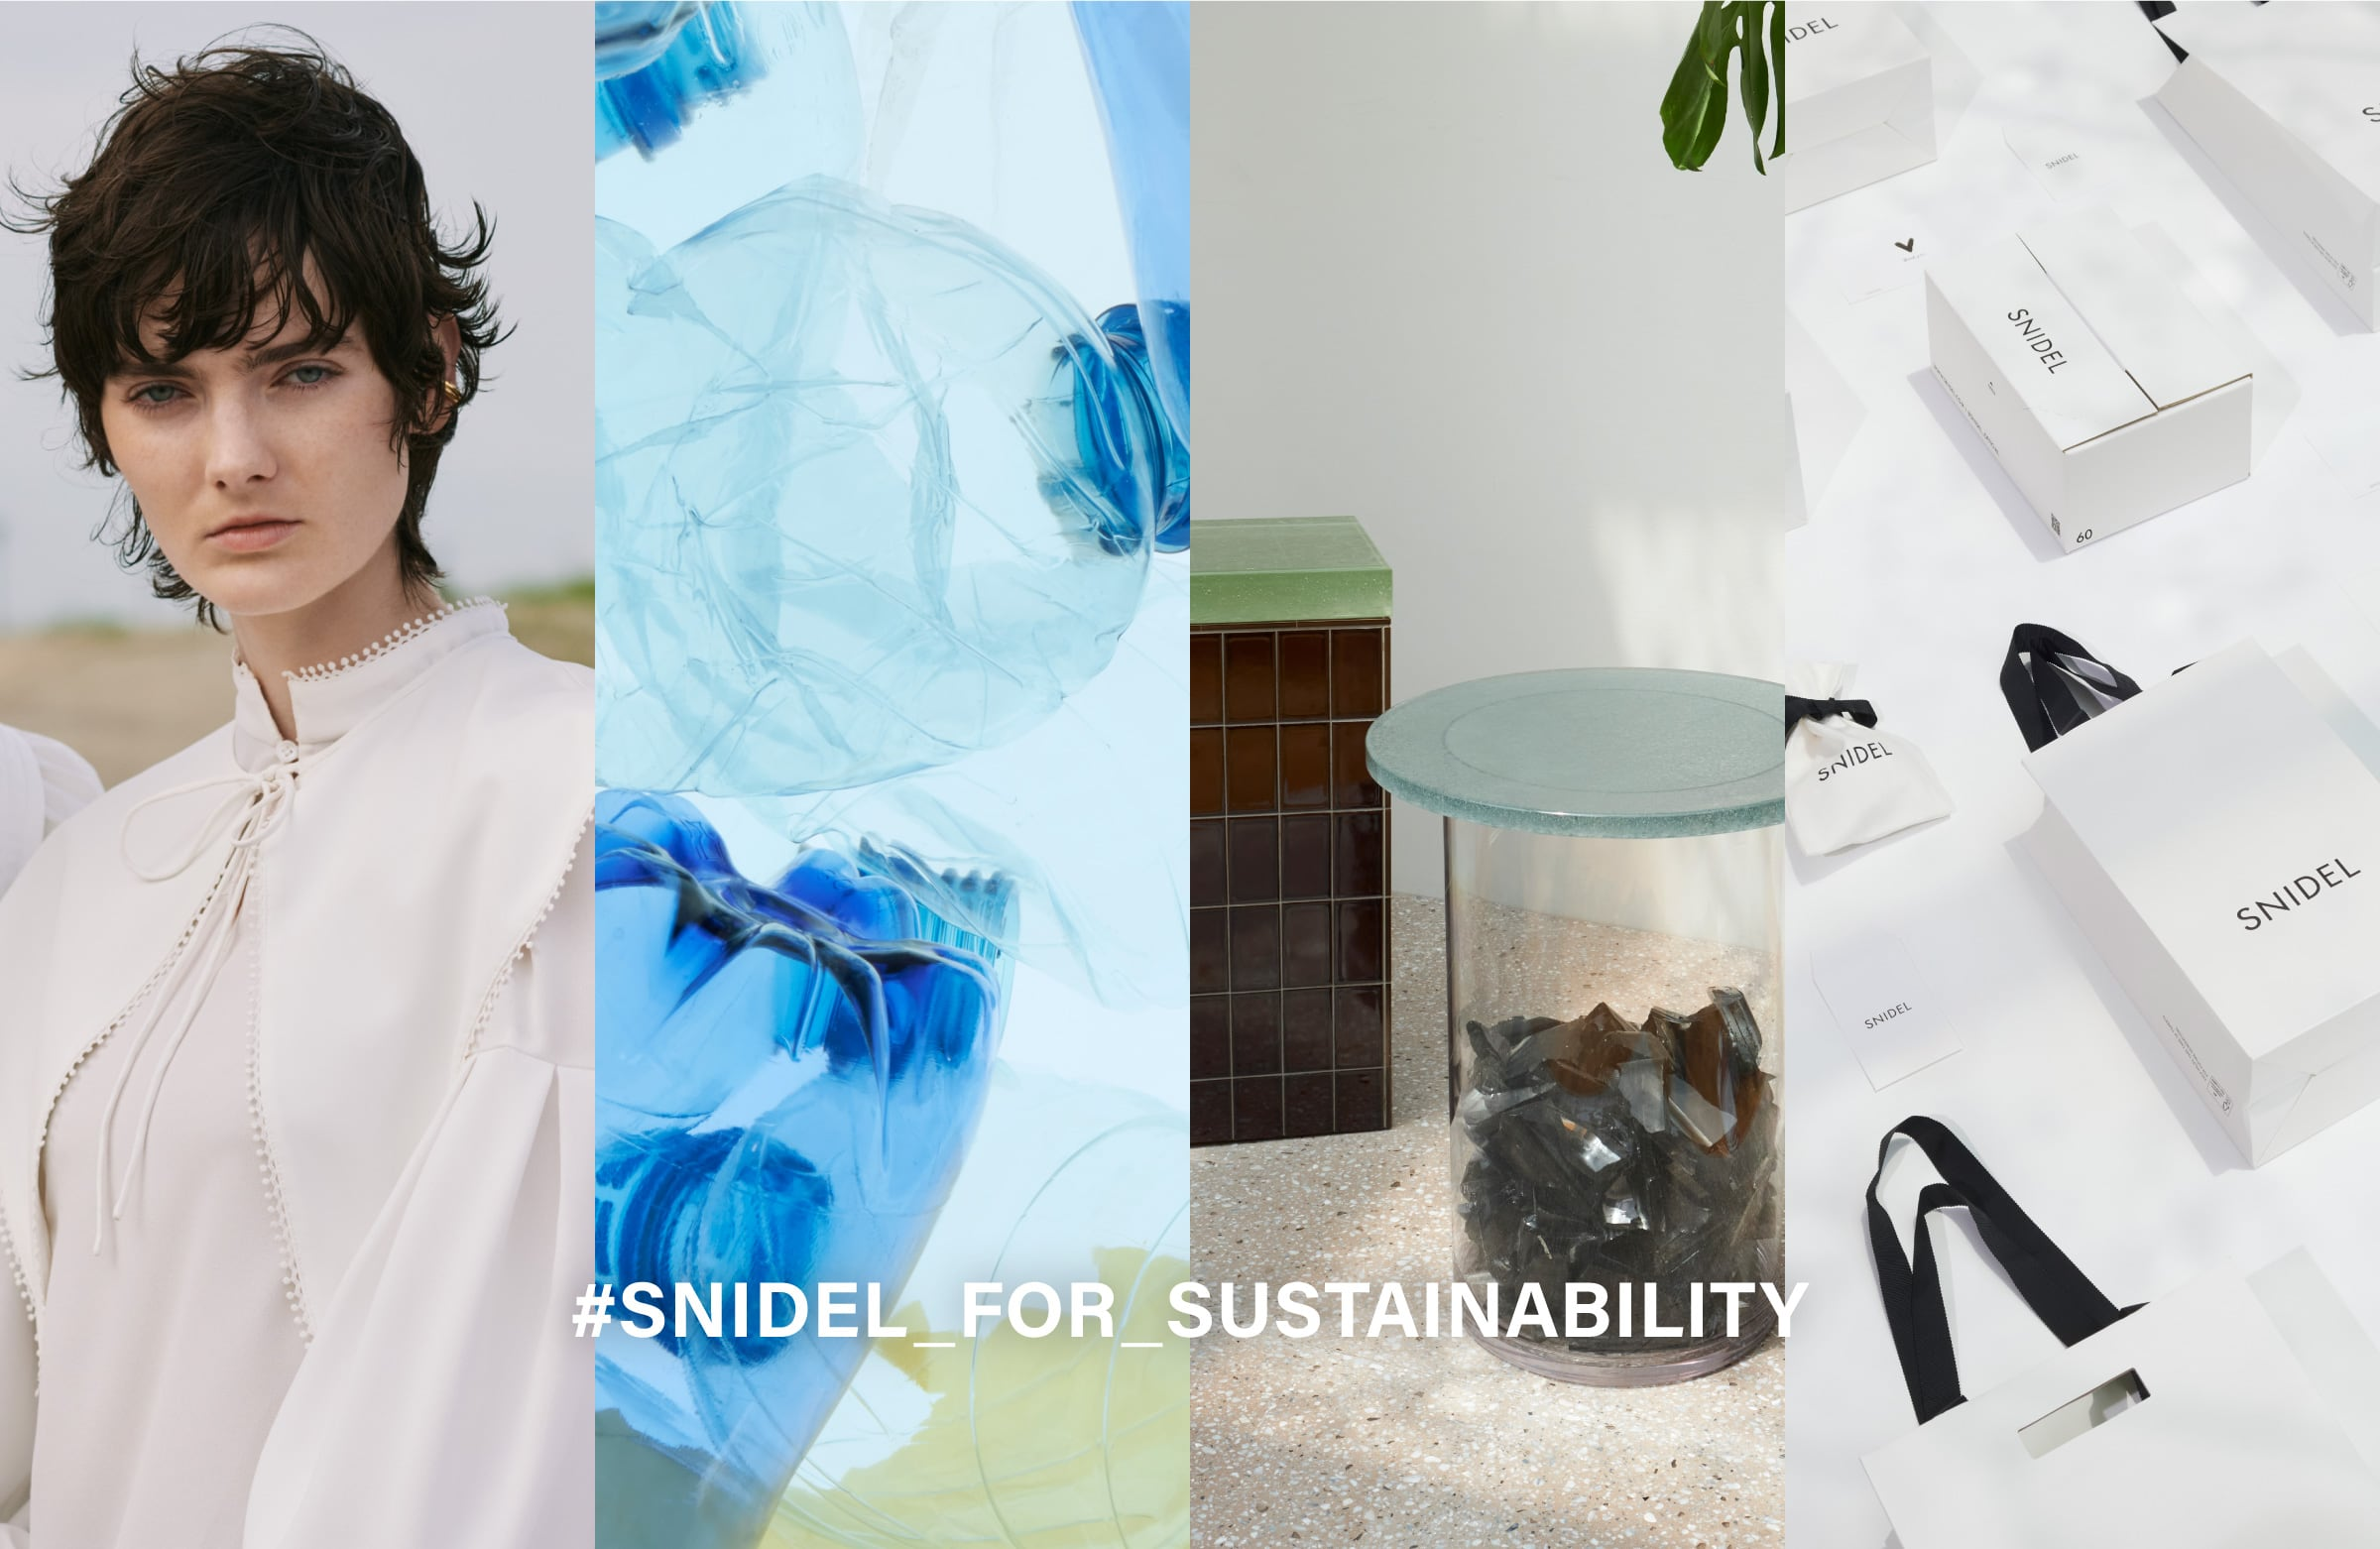 SNIDEL FOR SUSTAINABILITY